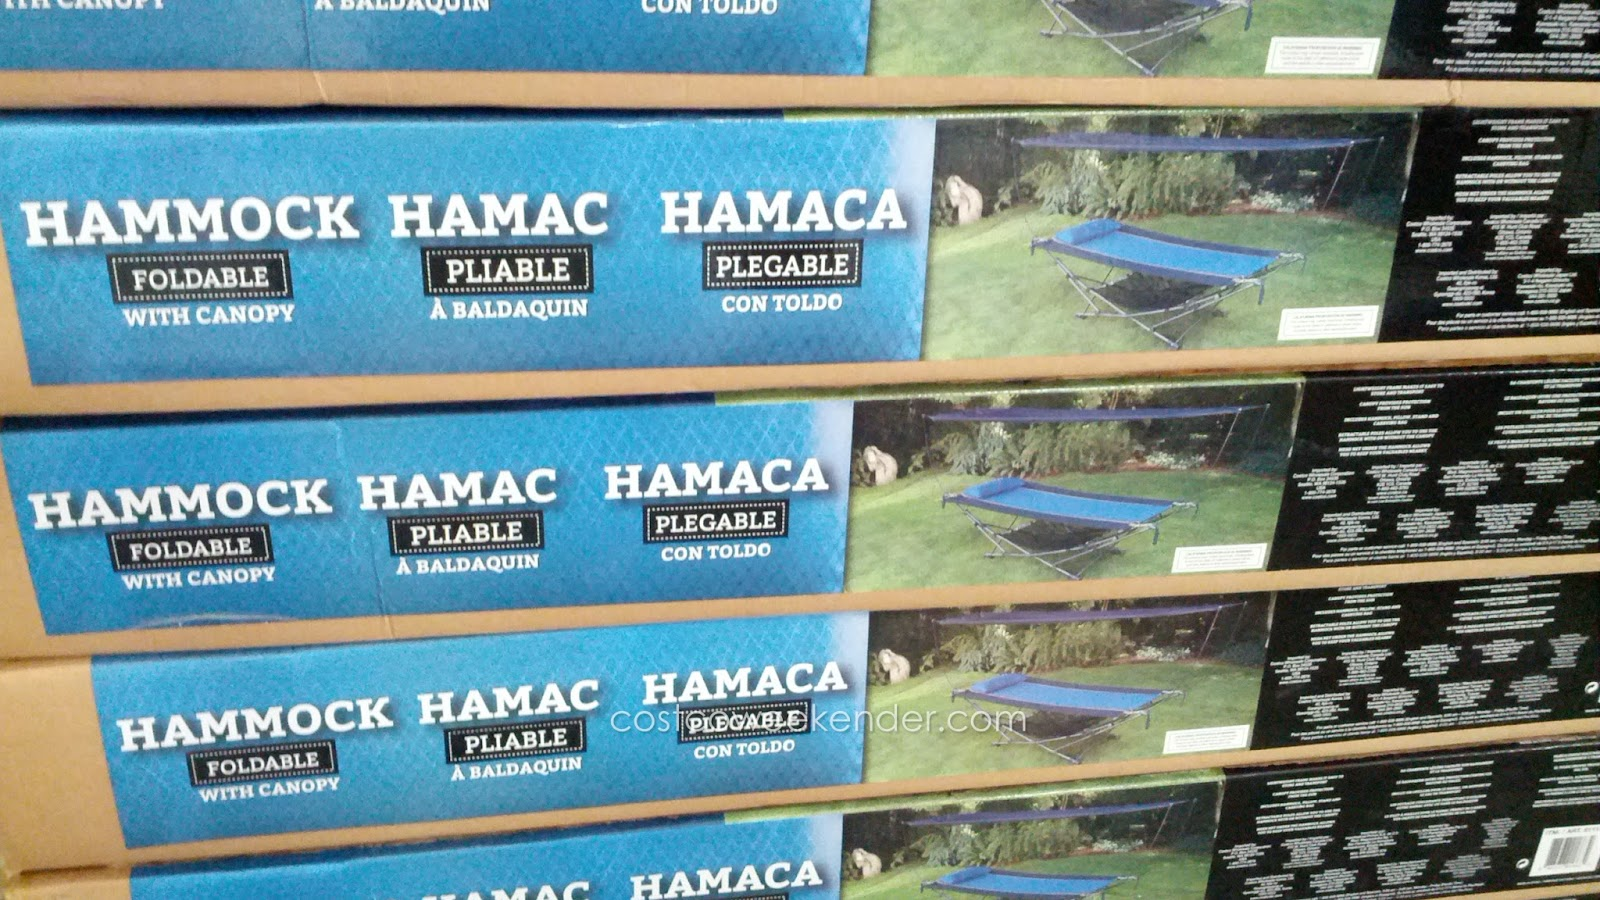 take a nap outside on the tofasco hammock at costco tofasco hammock with canopy   costco weekender  rh   costcoweekender